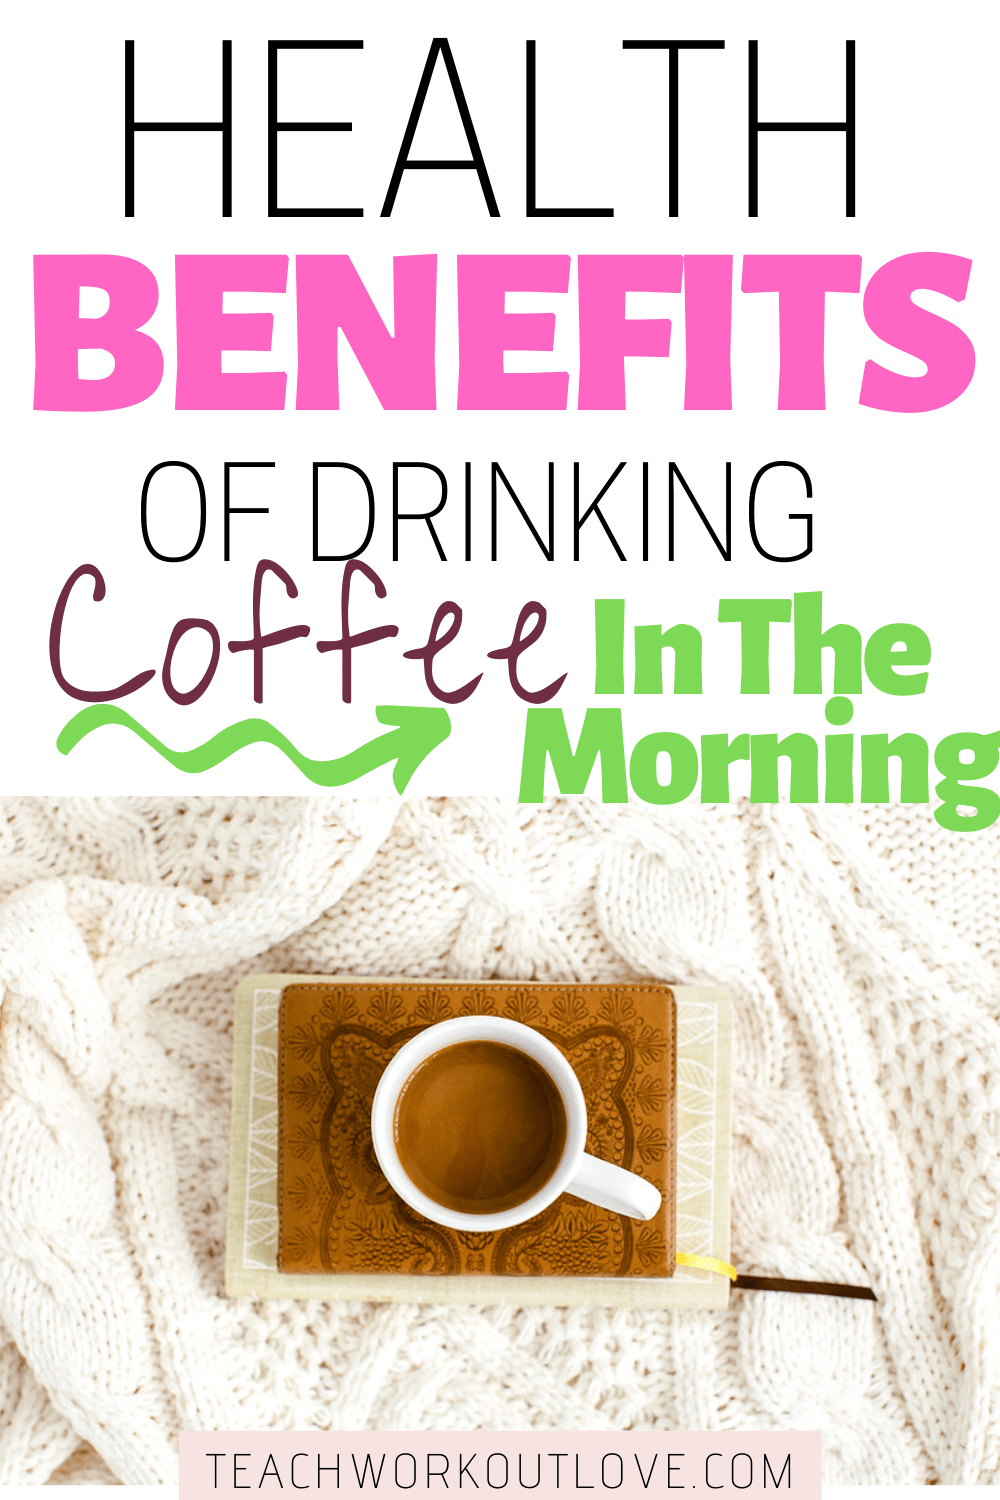 You may drink coffee in the morning, but do you know the benefits of that? Learn here 8 potential health benefits of drinking coffee in the morning.